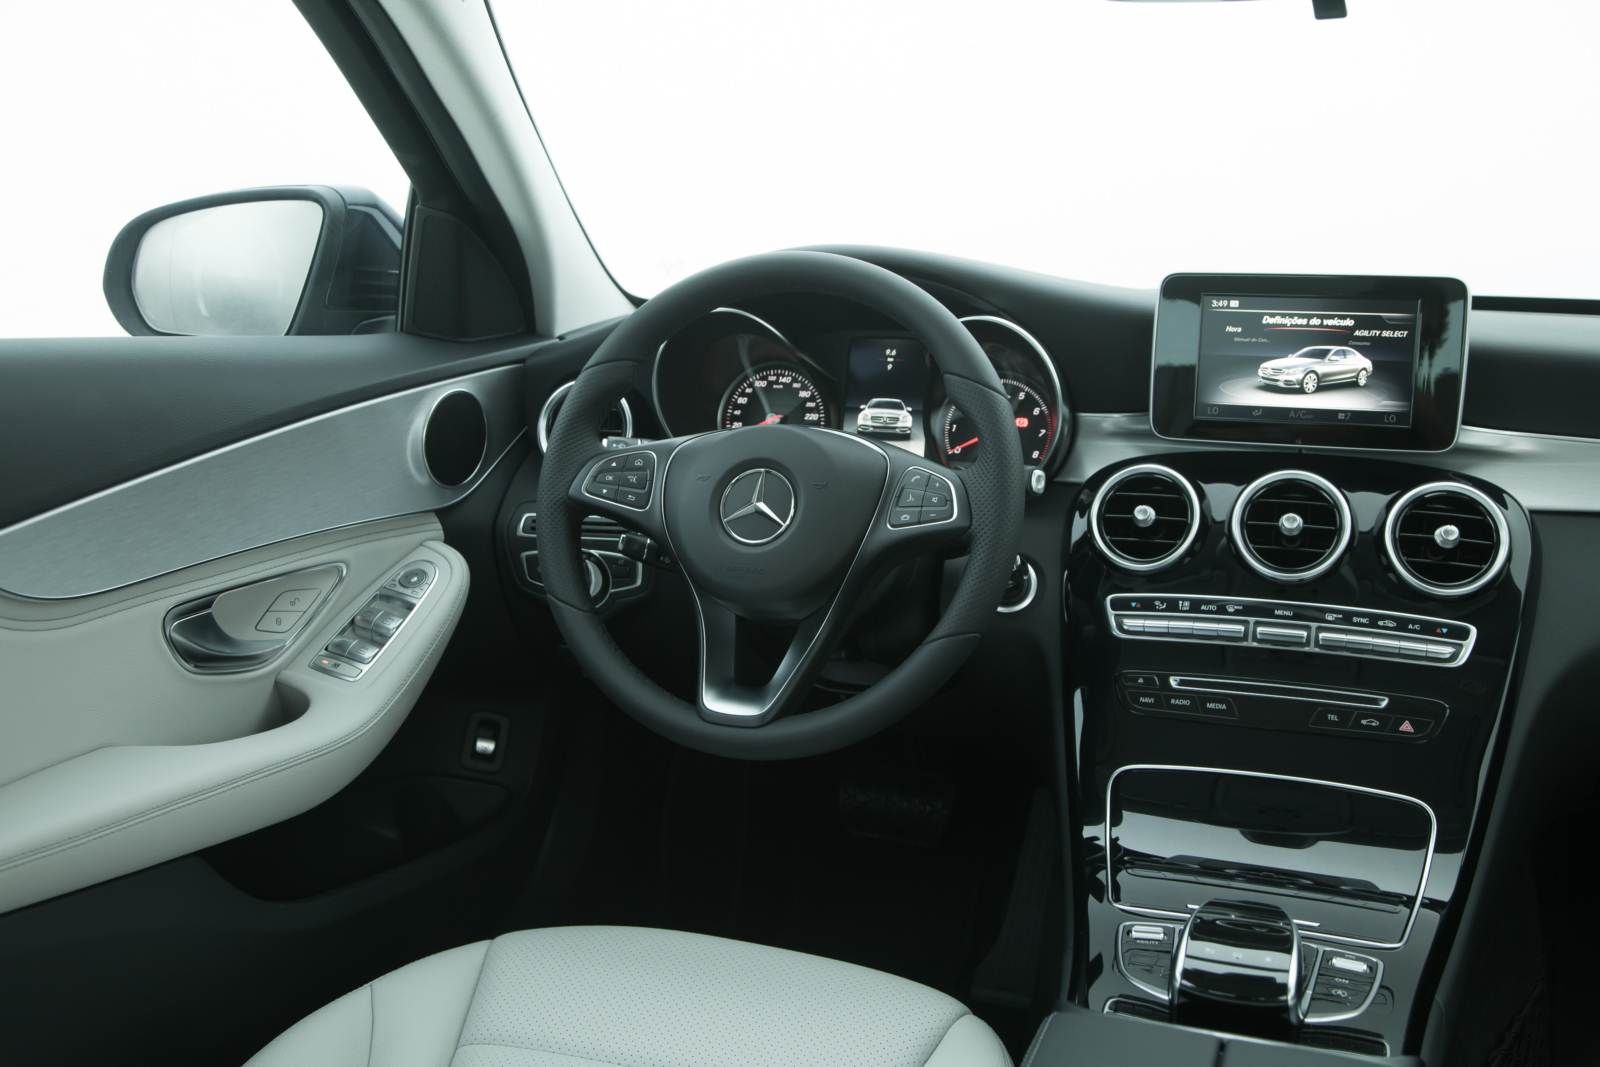 Mercedes Benz C180 Avantgarde   Interior